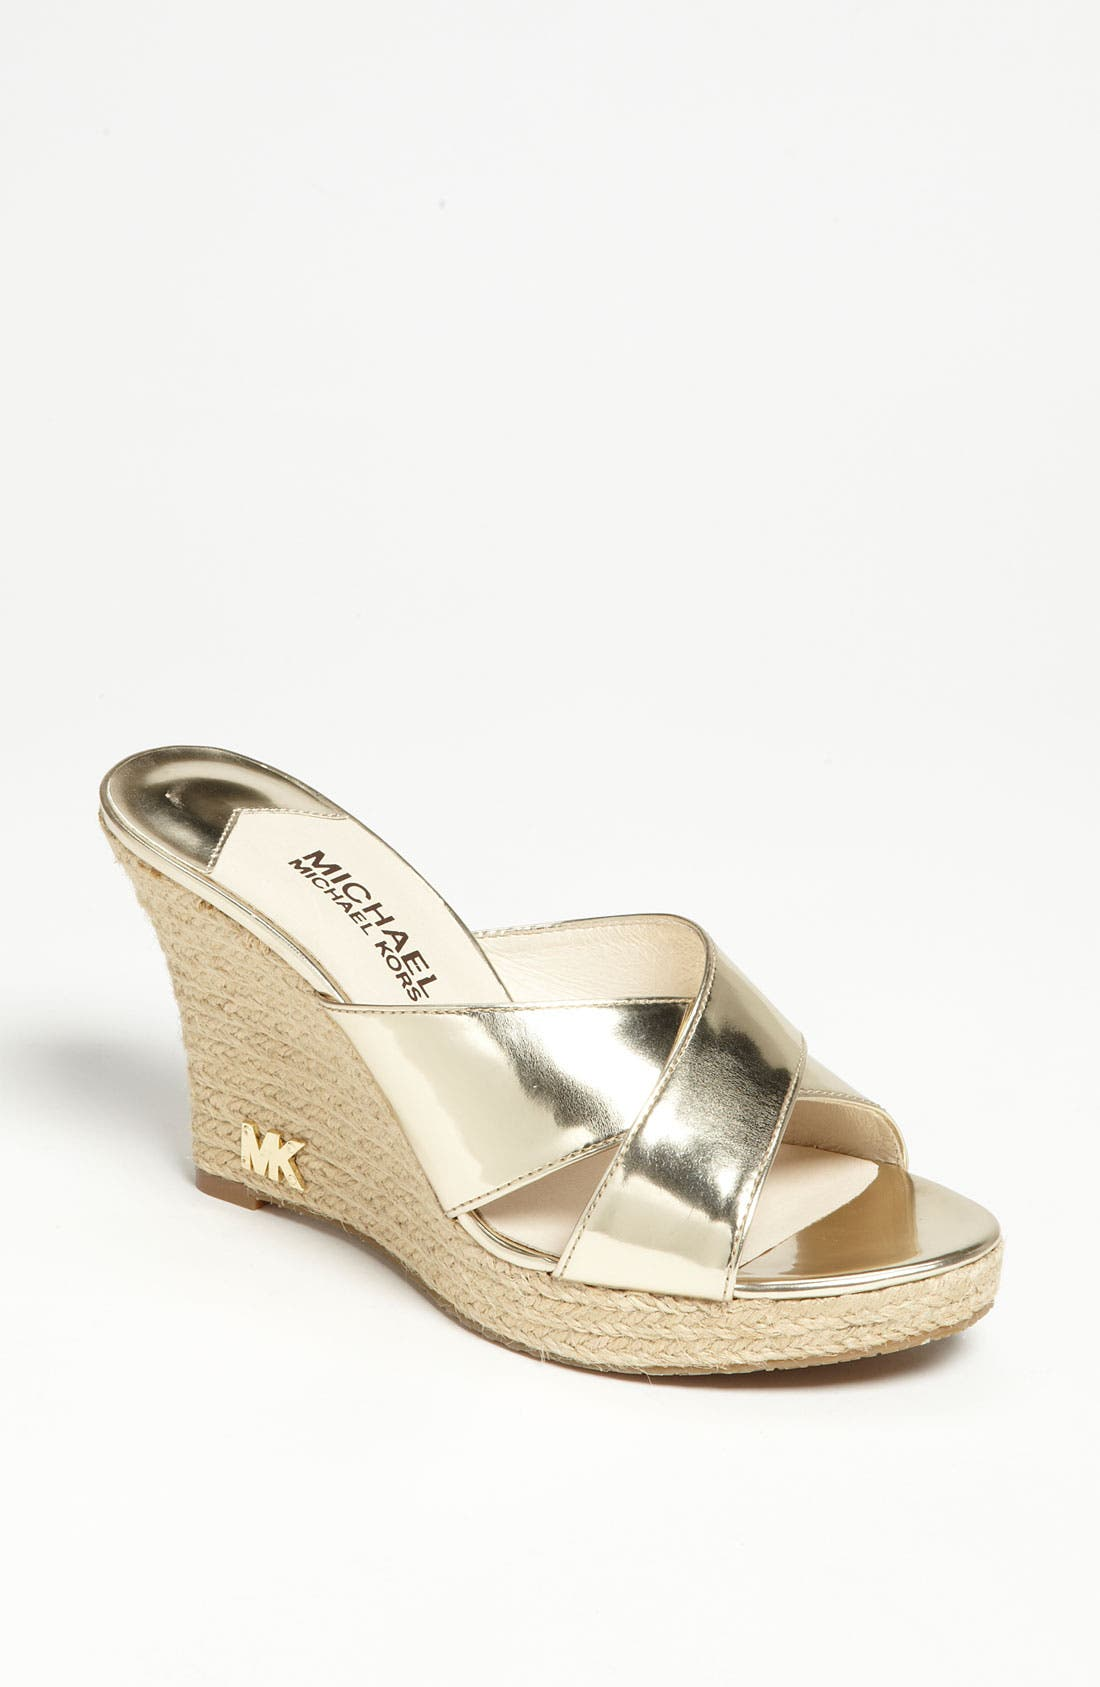 Alternate Image 1 Selected - MICHAEL Michael Kors 'Kami' Mule